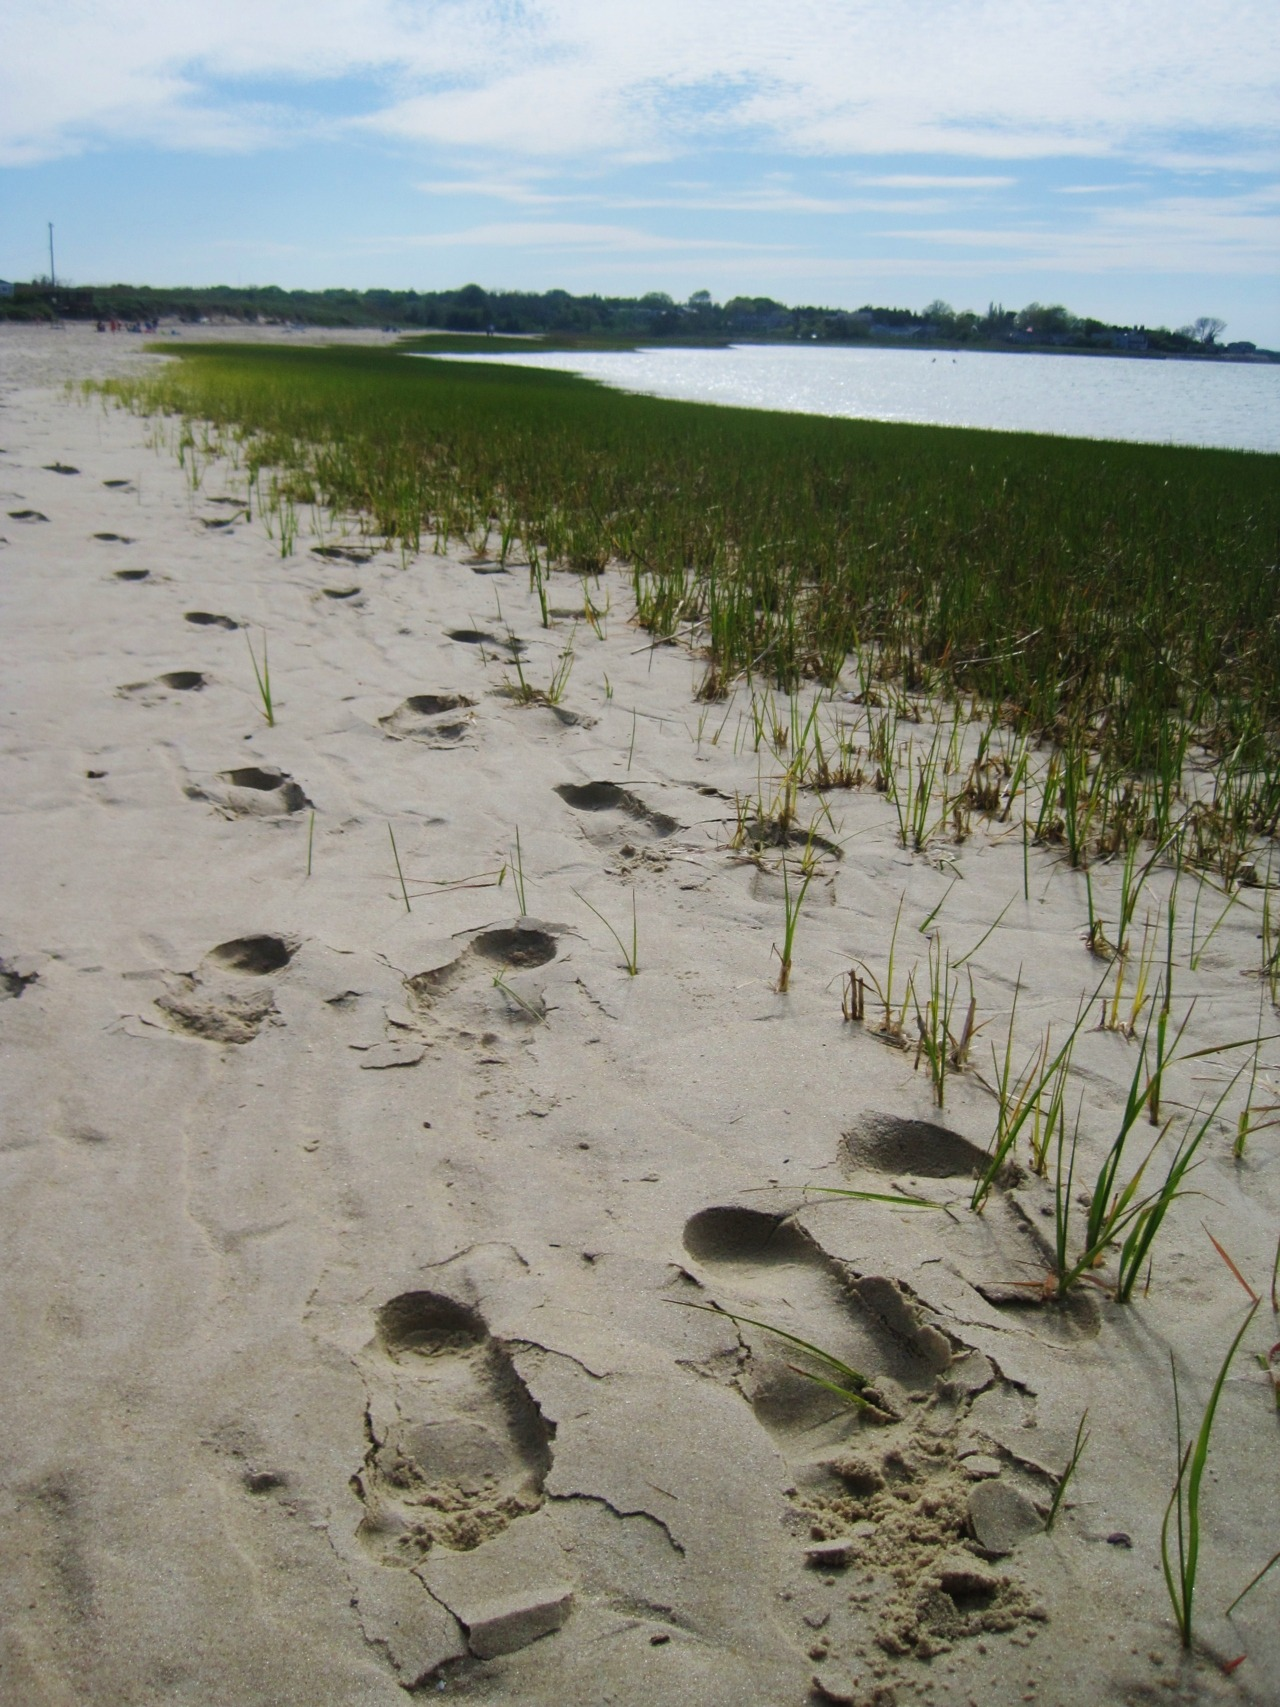 Footprints in the sand. Out on Cape Cod.